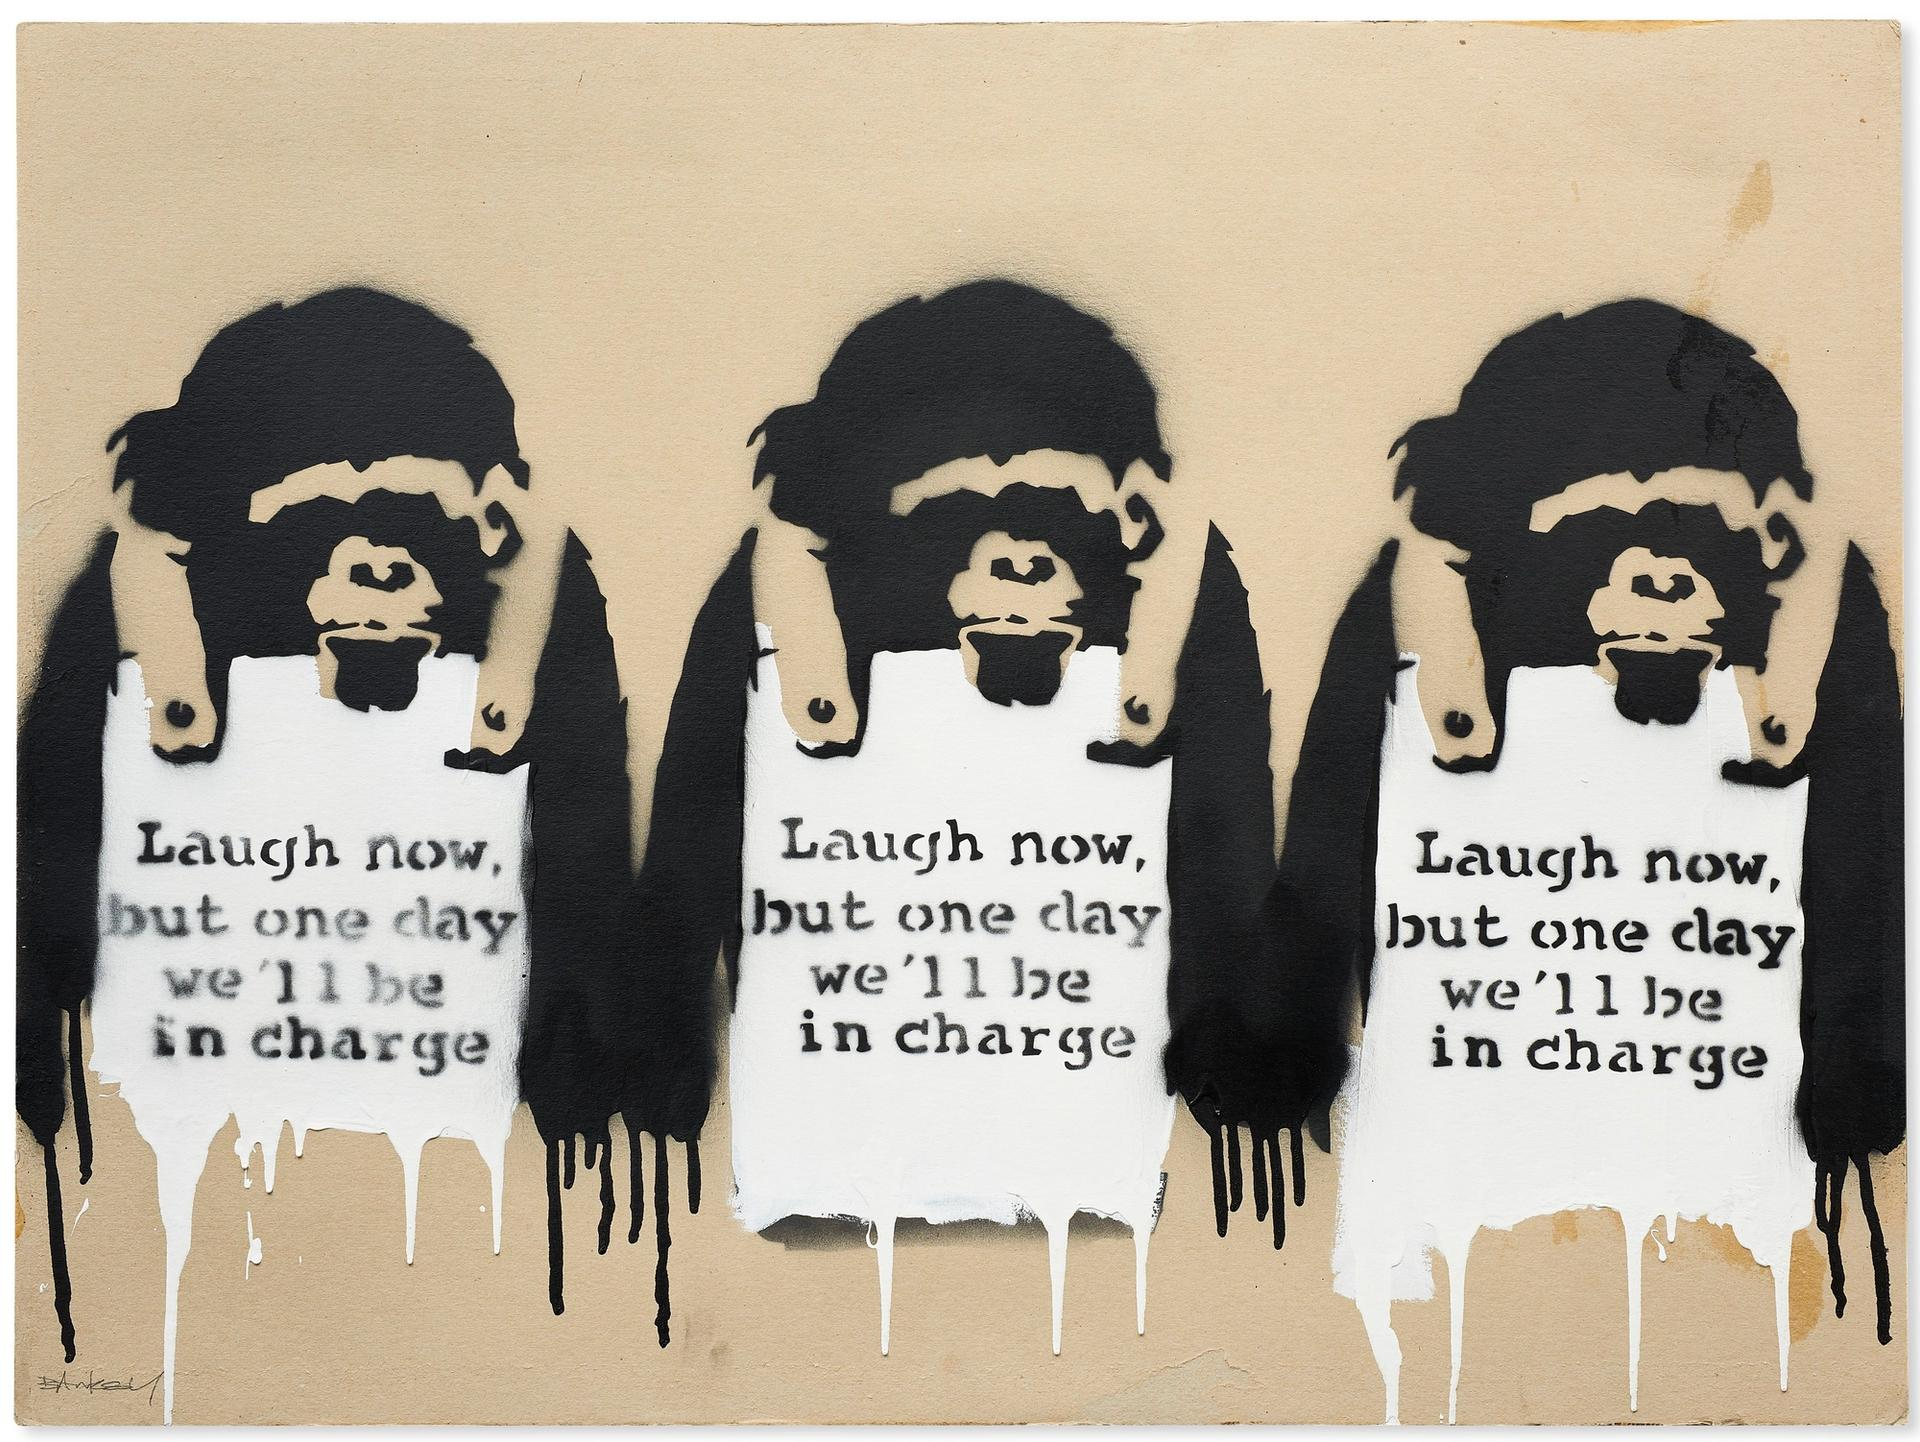 Banksy's Laugh Now But One Day We'll Be In Charge (2002), sold at Christie's on 11 May for $2.1m (with fees) Courtesy of Christie's